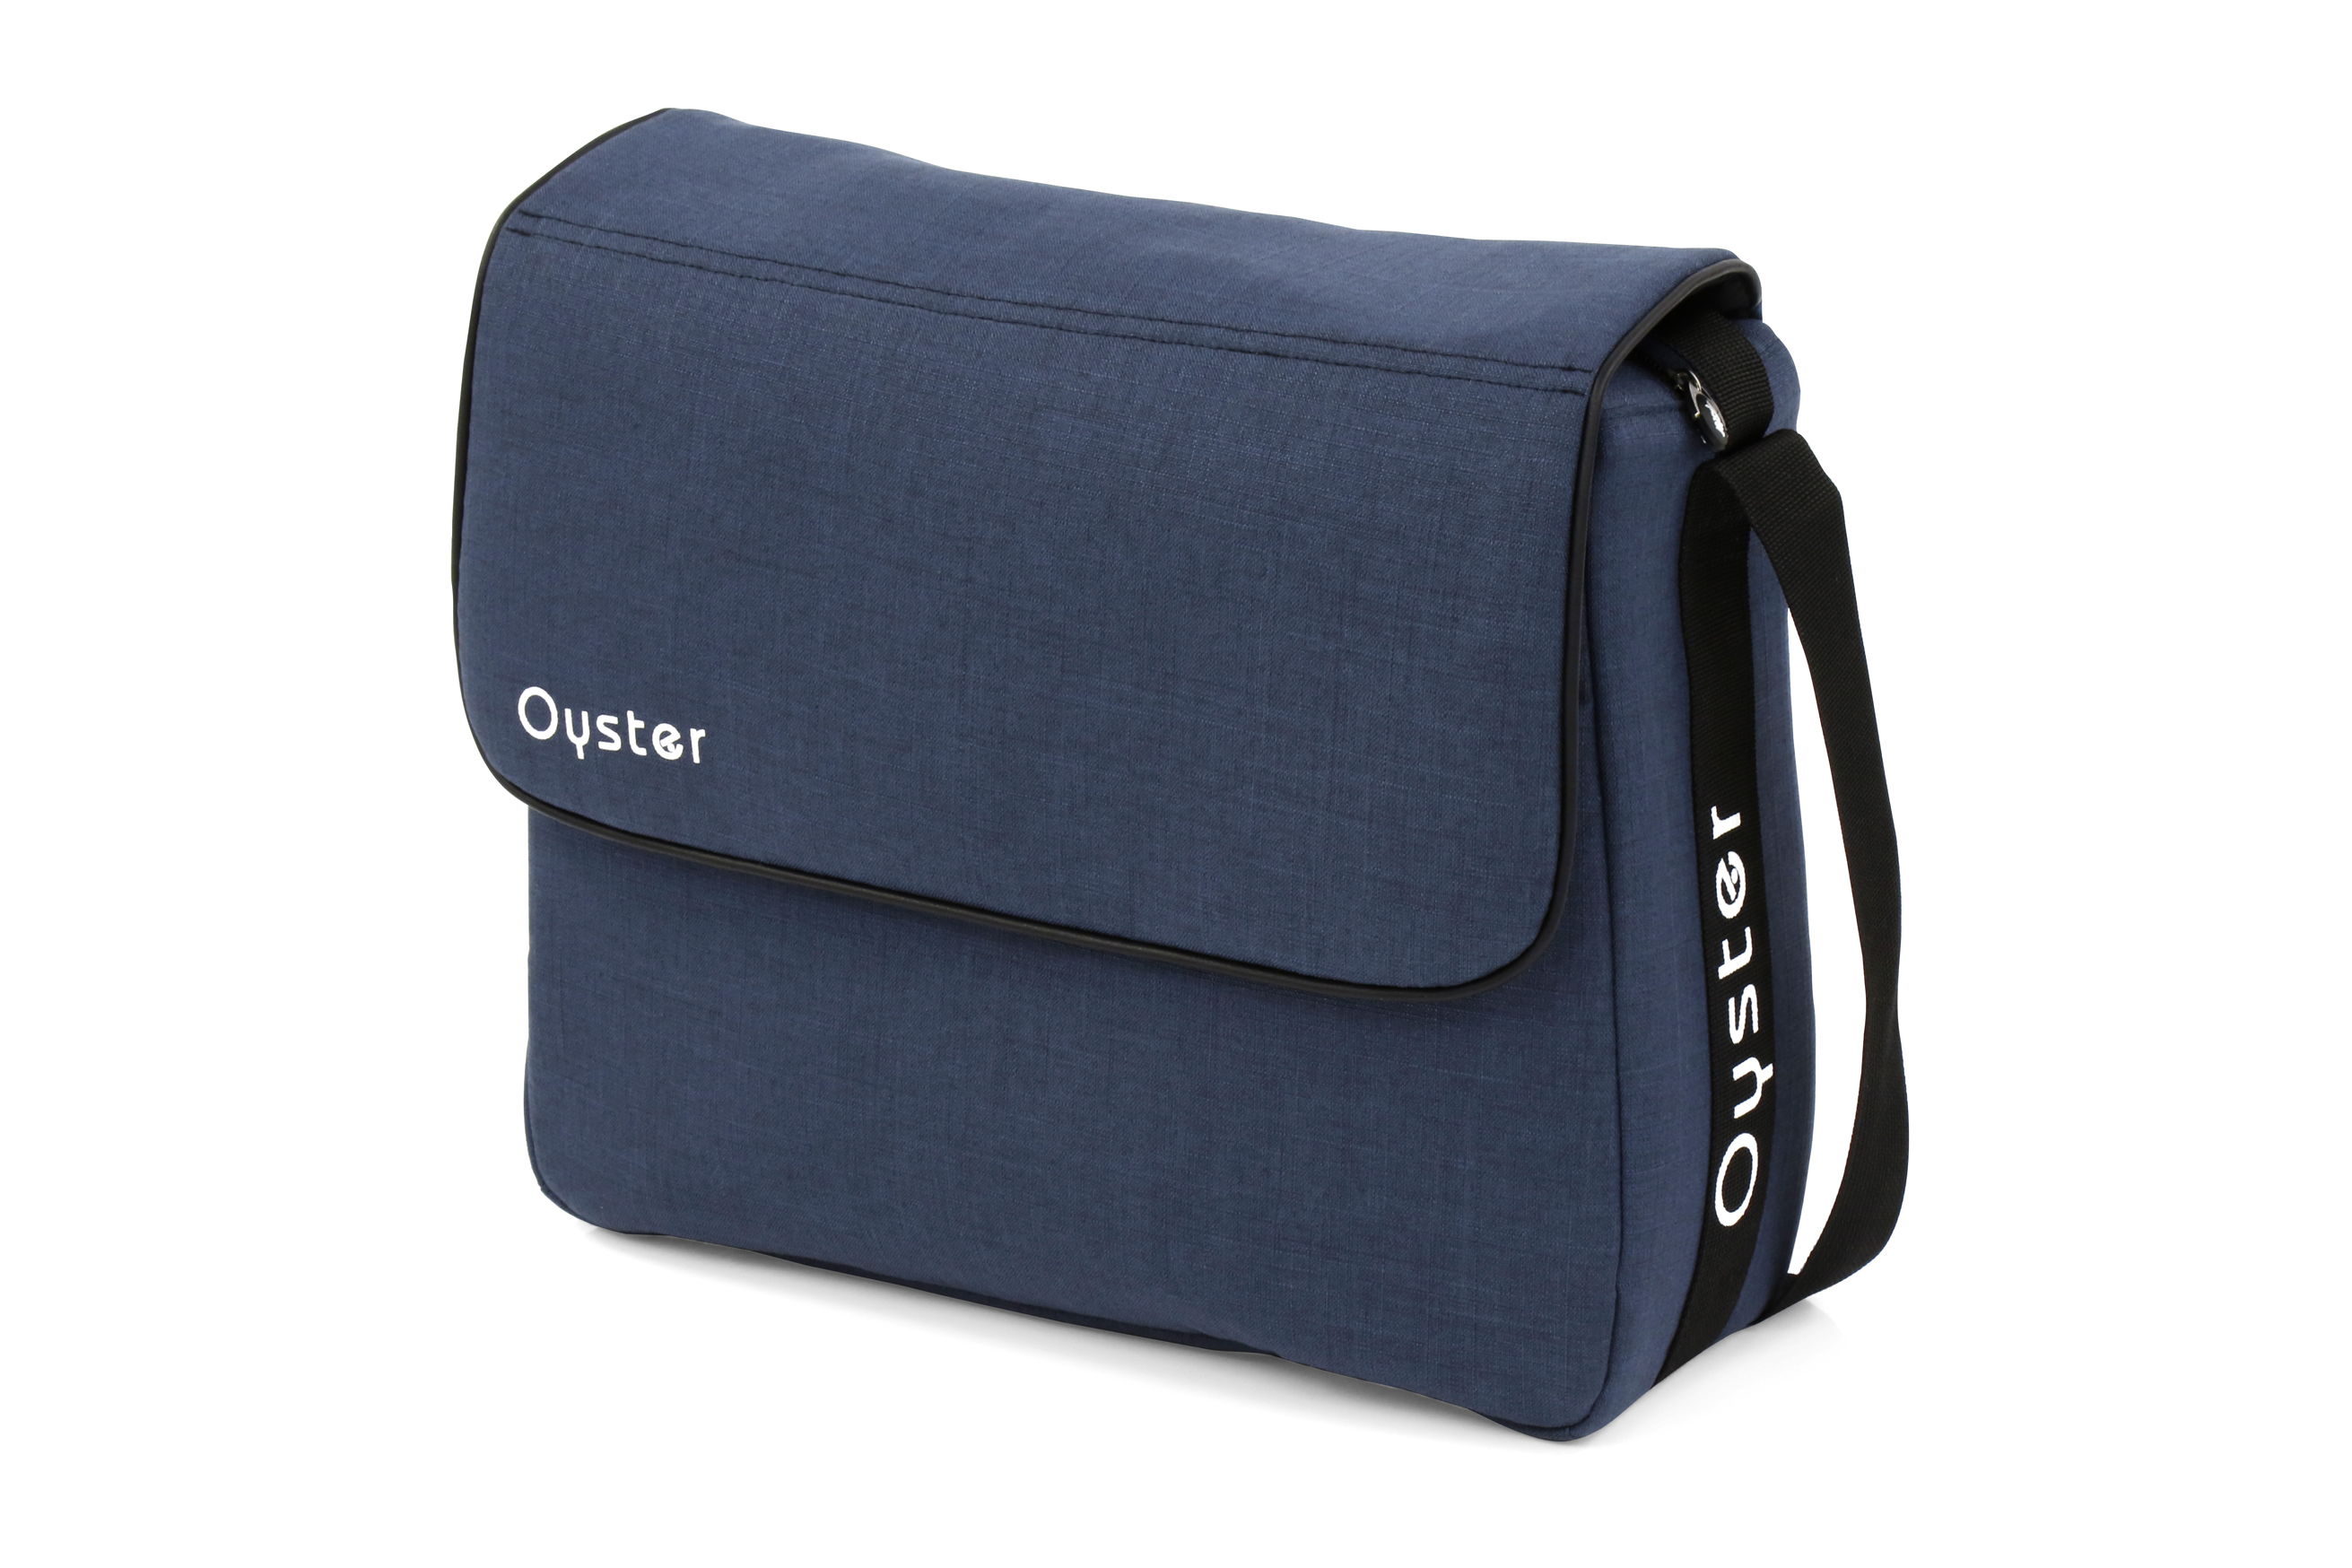 Oyster_ChangingBag_OxfordBlue